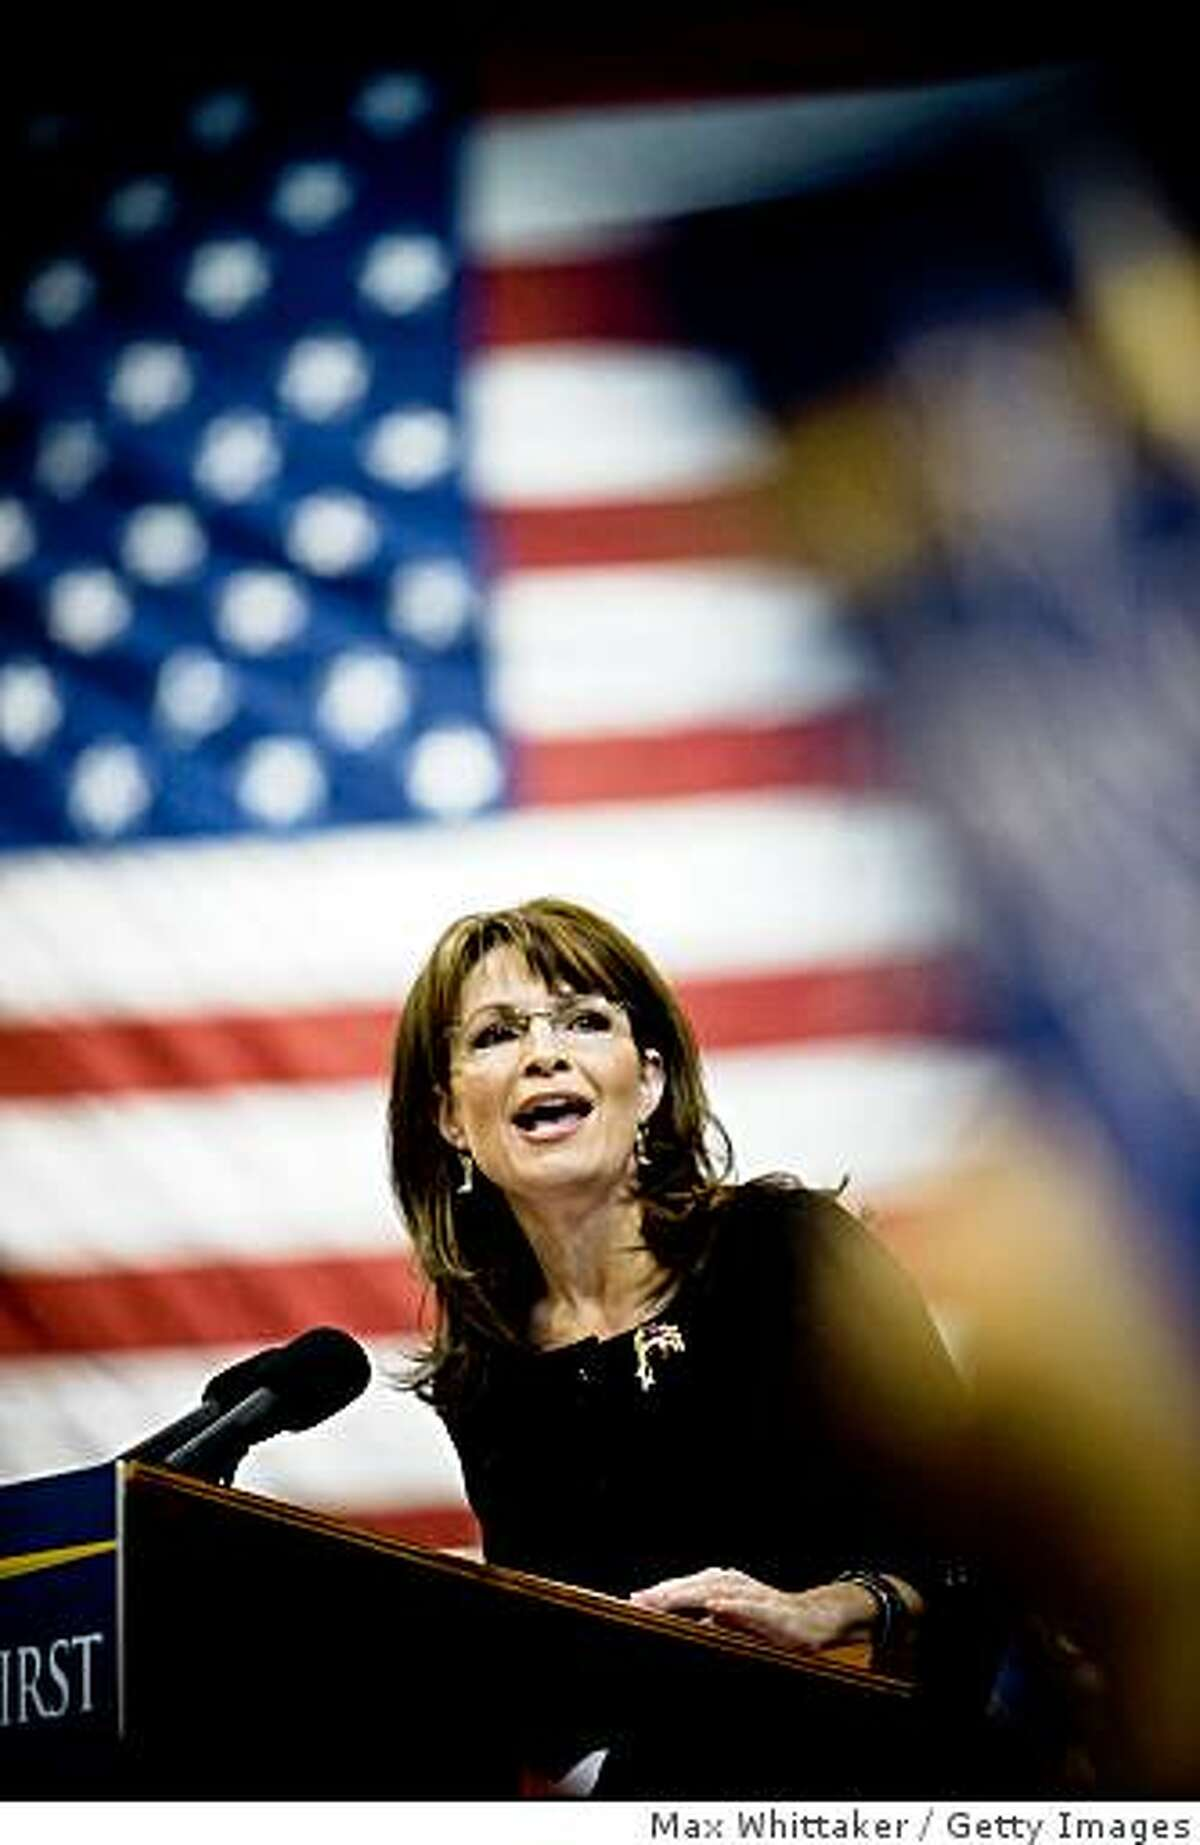 Republican vice presidential candidate Alaska Governor Sarah Palin speaks at a rally October 21, 2008 in Reno, Nevada.